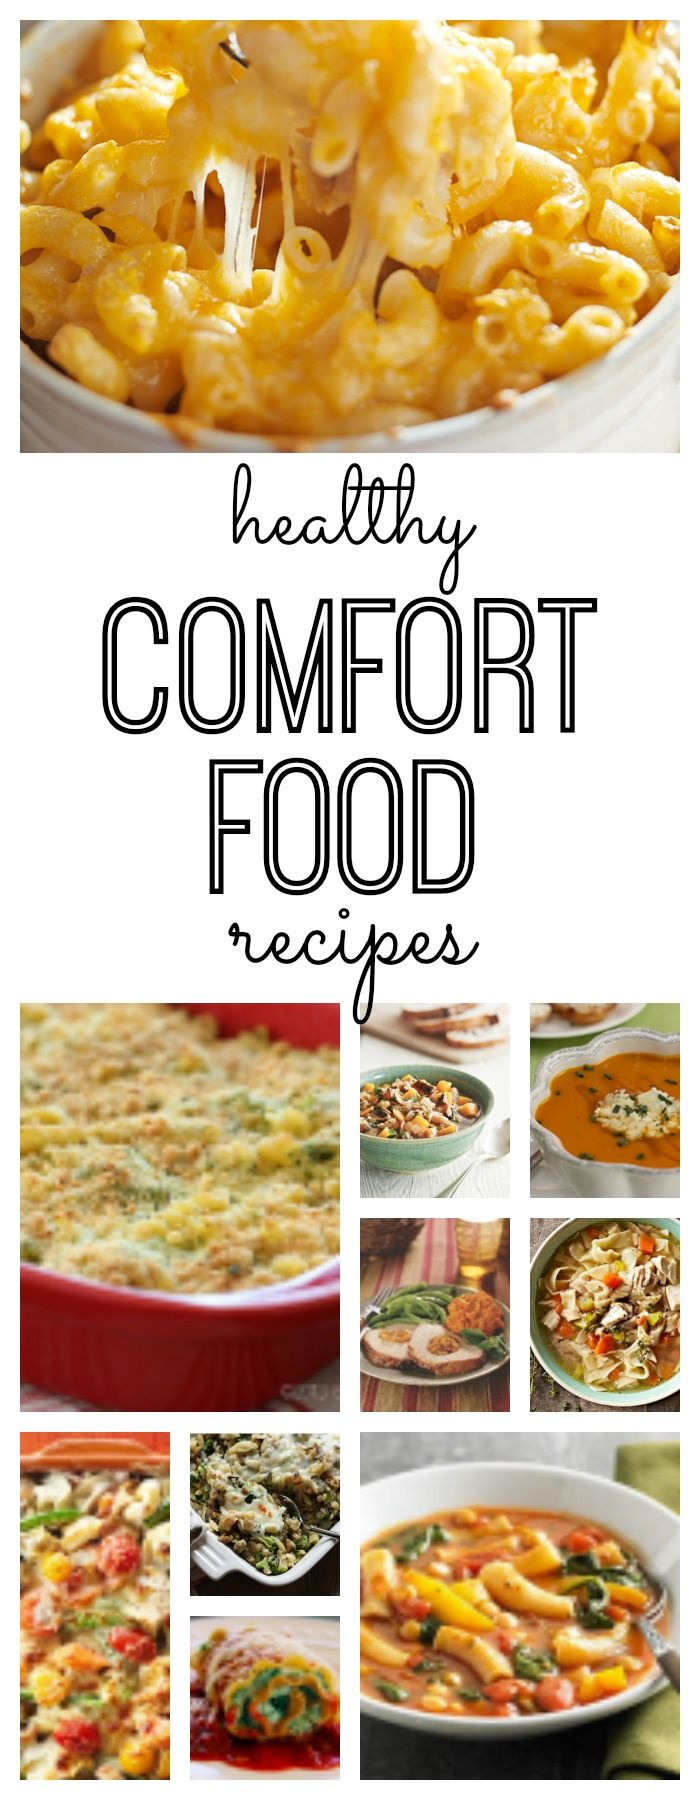 Healthy Comfort Food Recipes | The winter, My life and Recipes